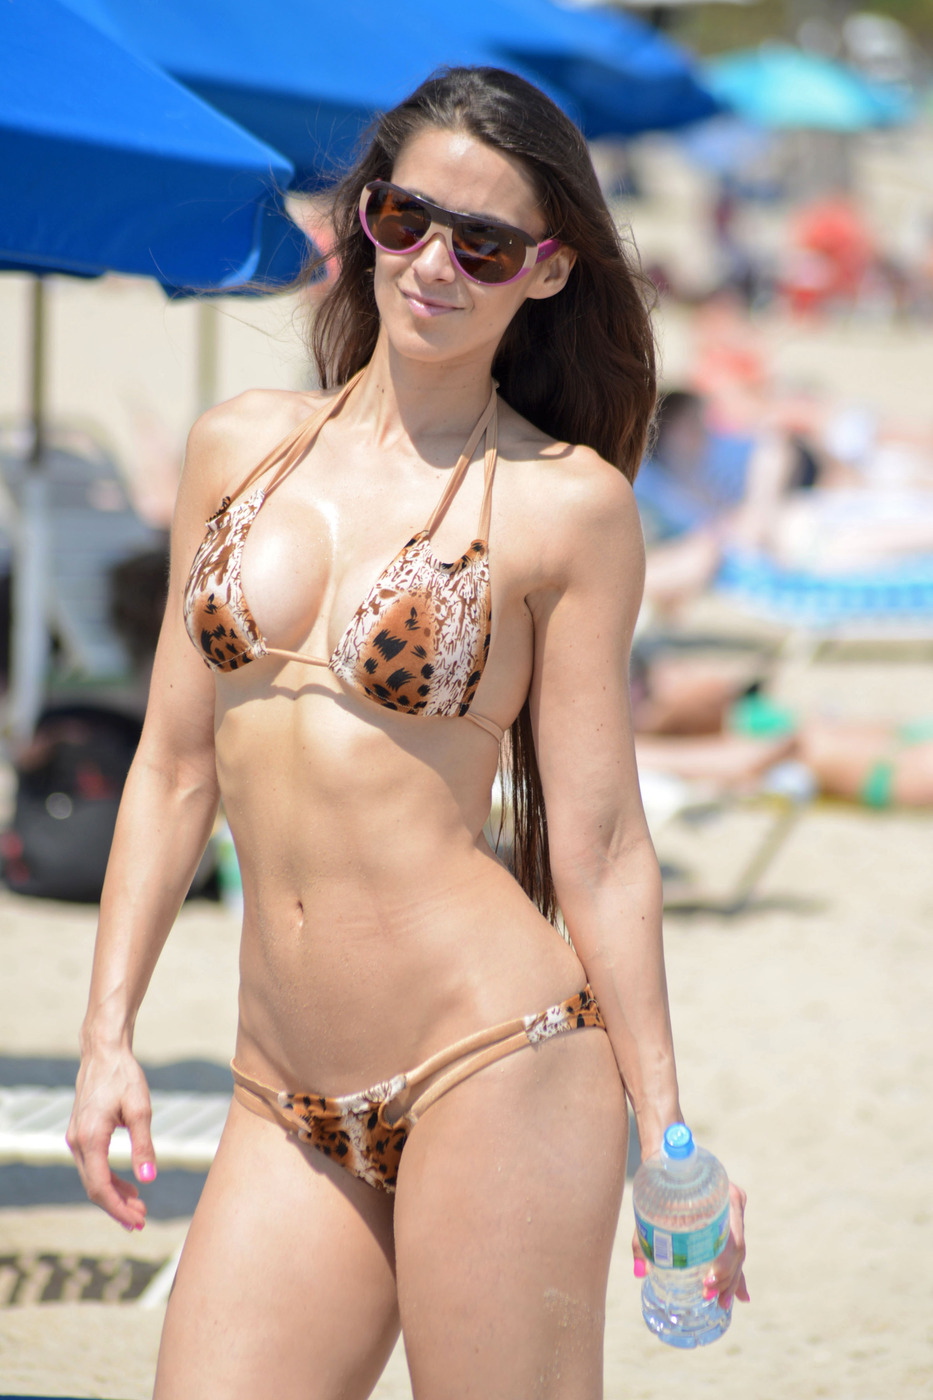 Anais Zanotti anais zanotti wearing a tiny bikini in miami | celebrity